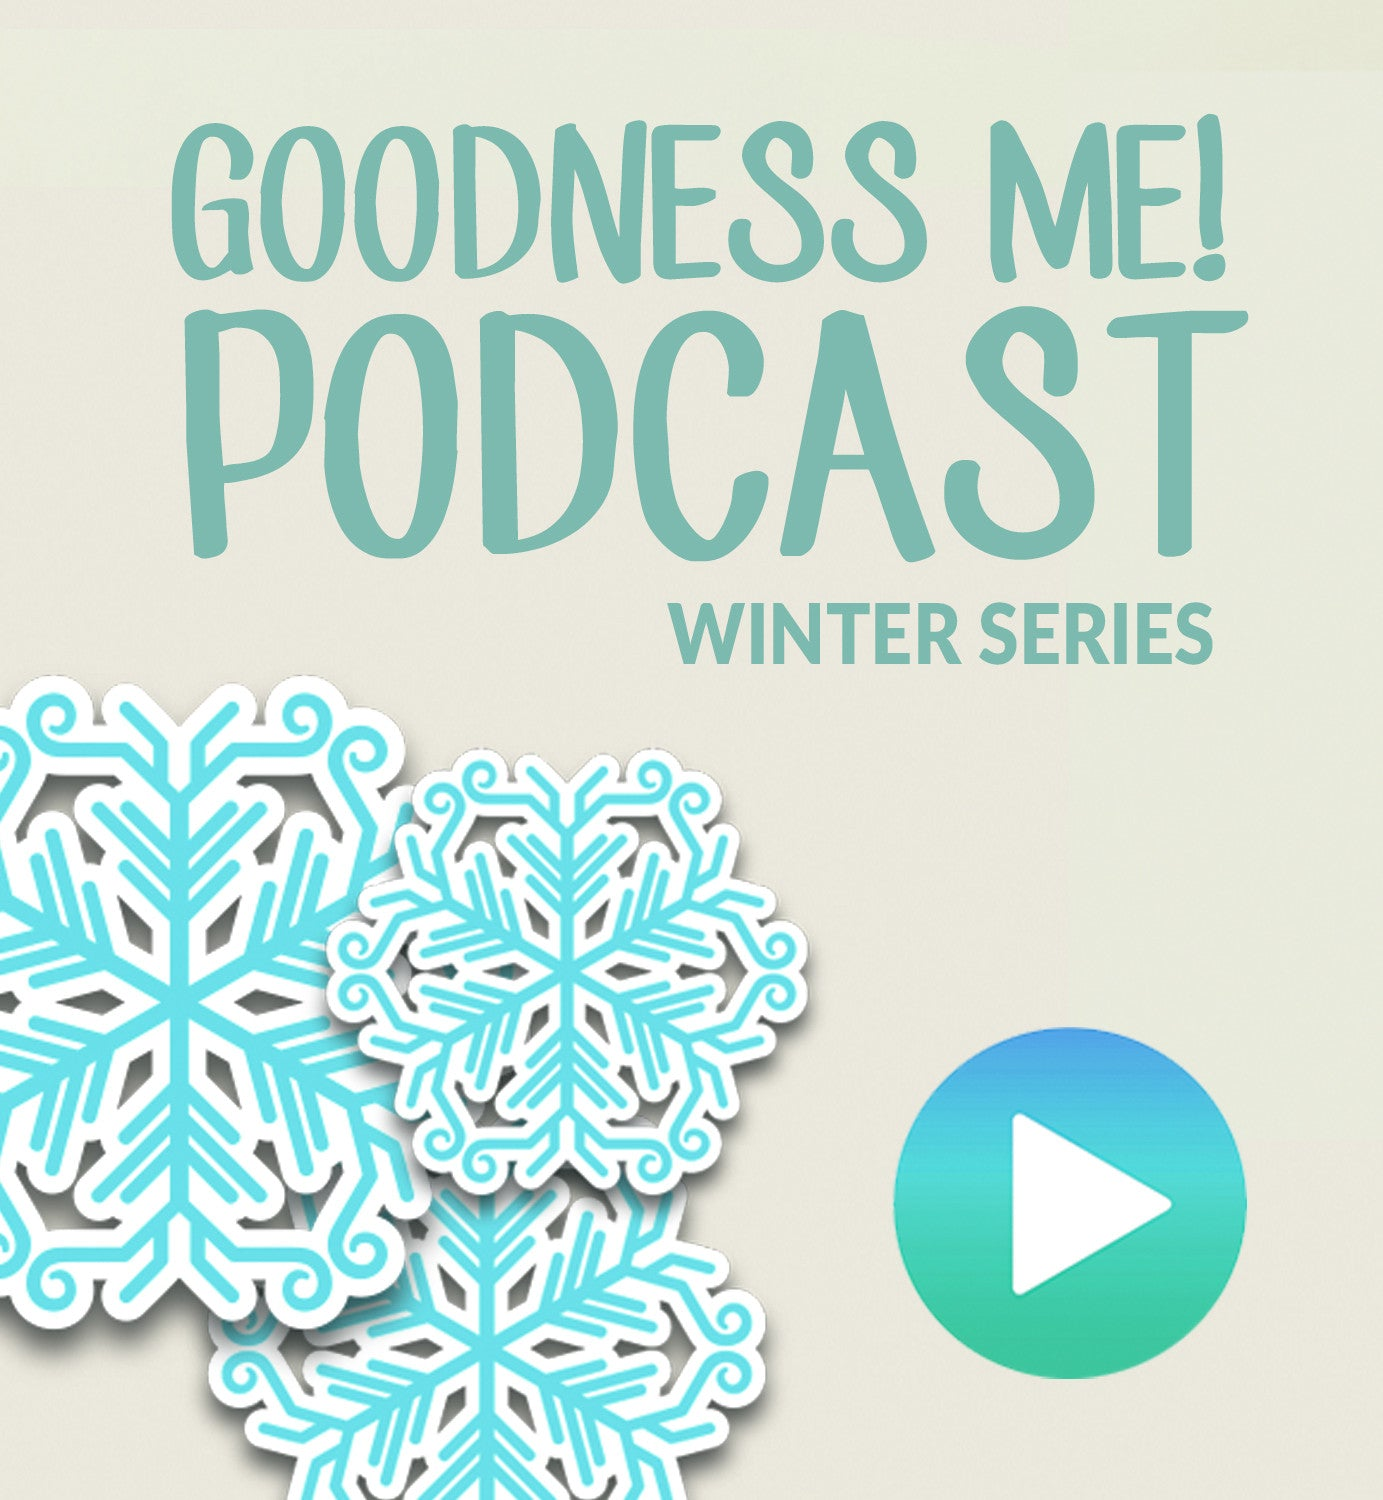 Jan 14 Goodness Me! Podcast - Part 2: What is Dysbiosis?